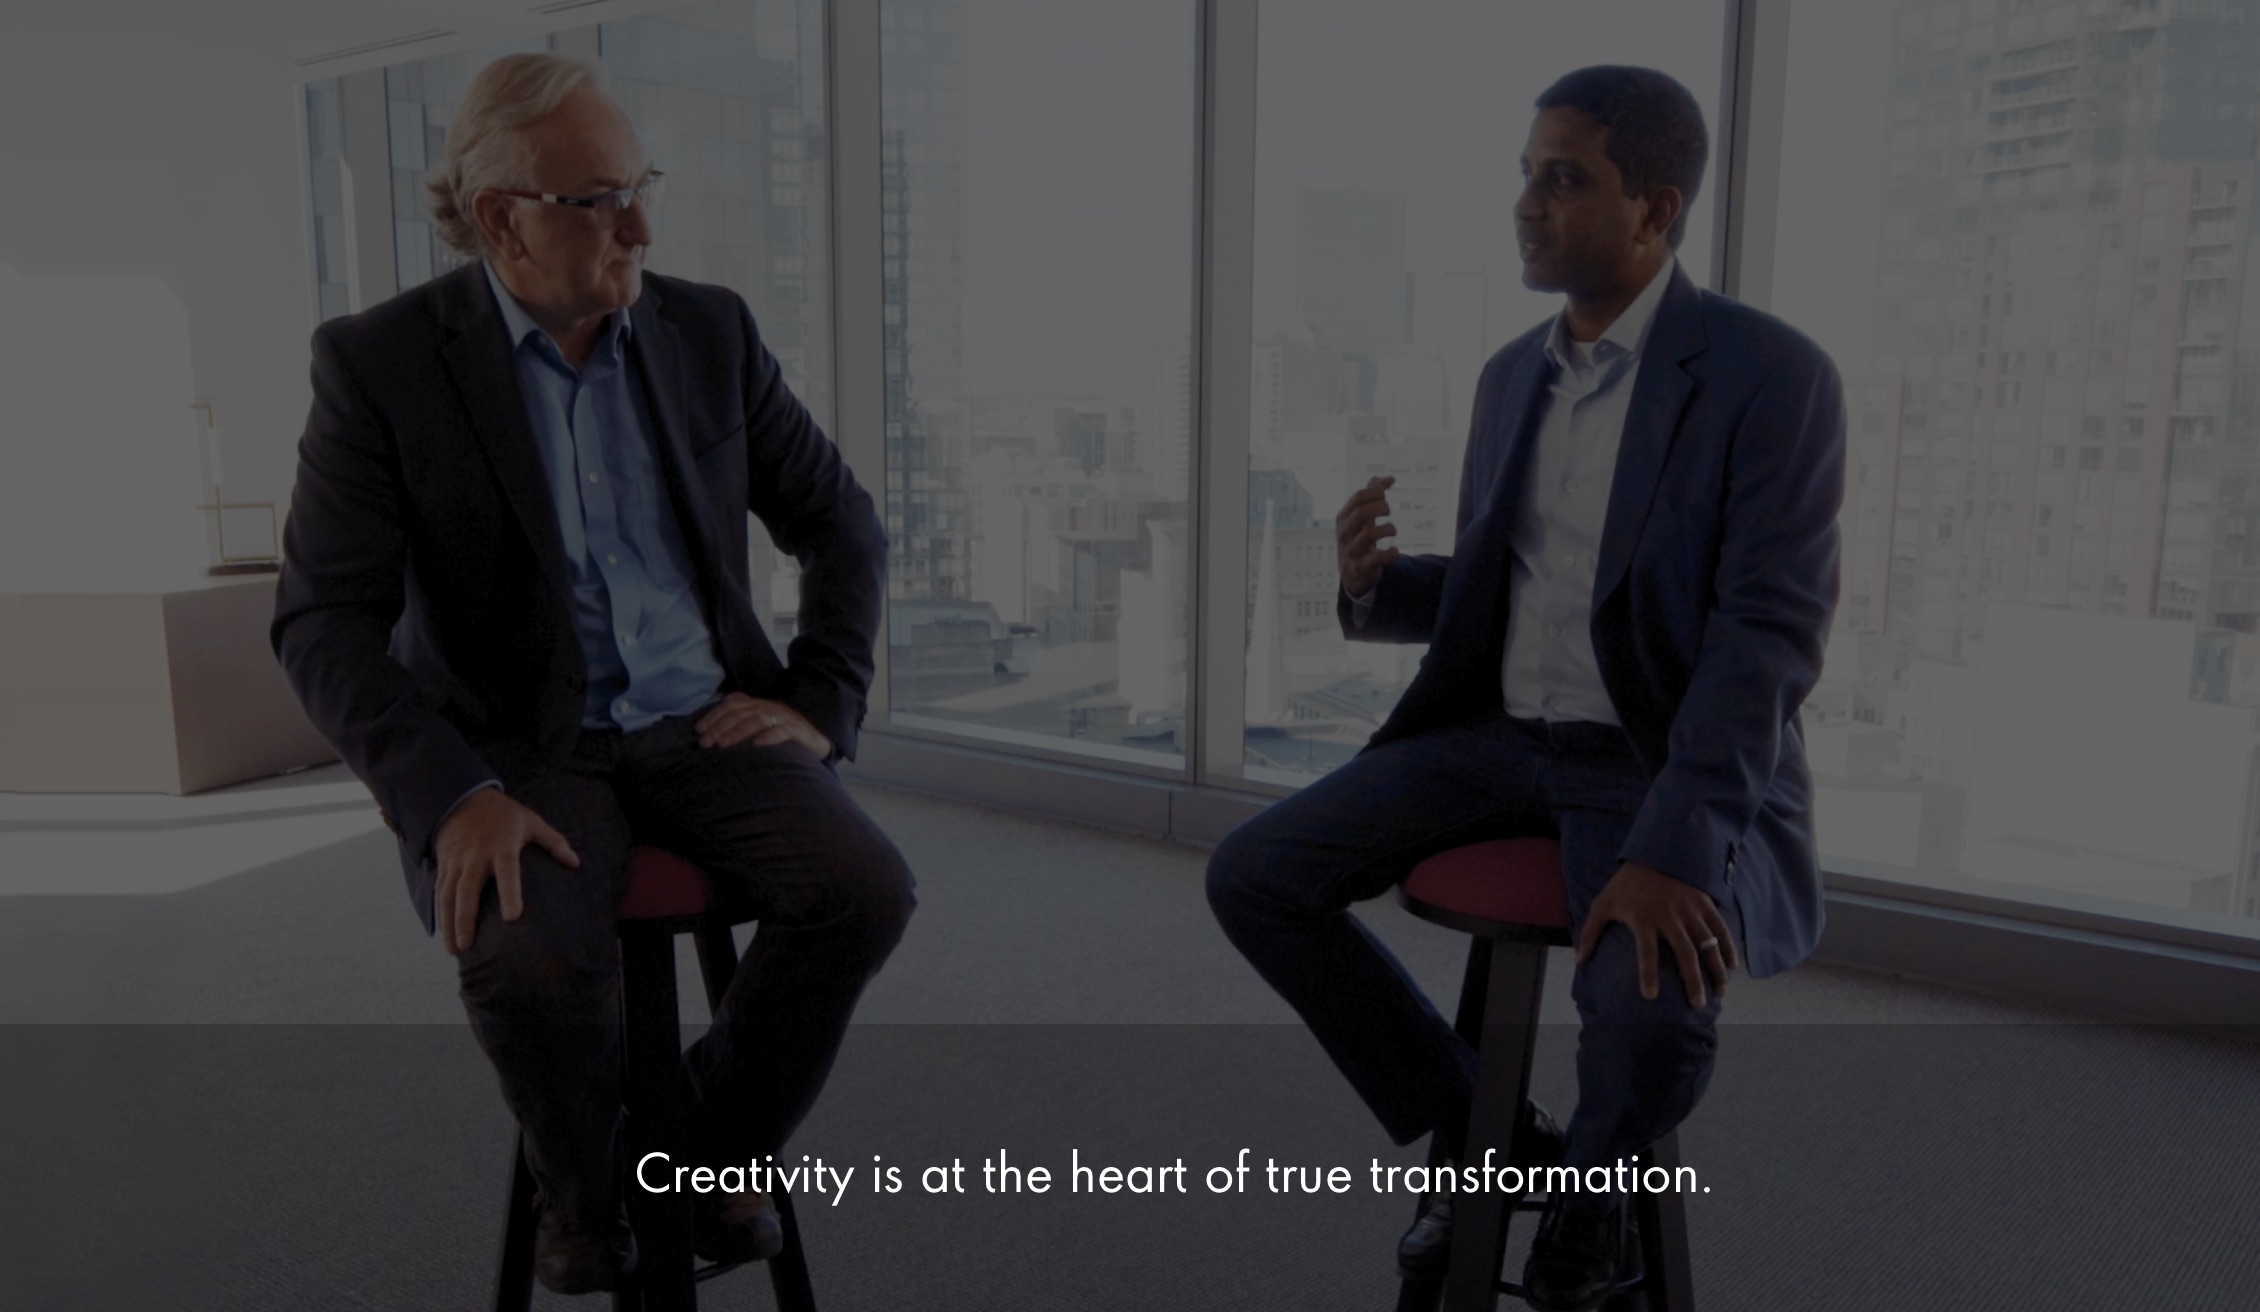 Creativity is at the heart of true transformation.